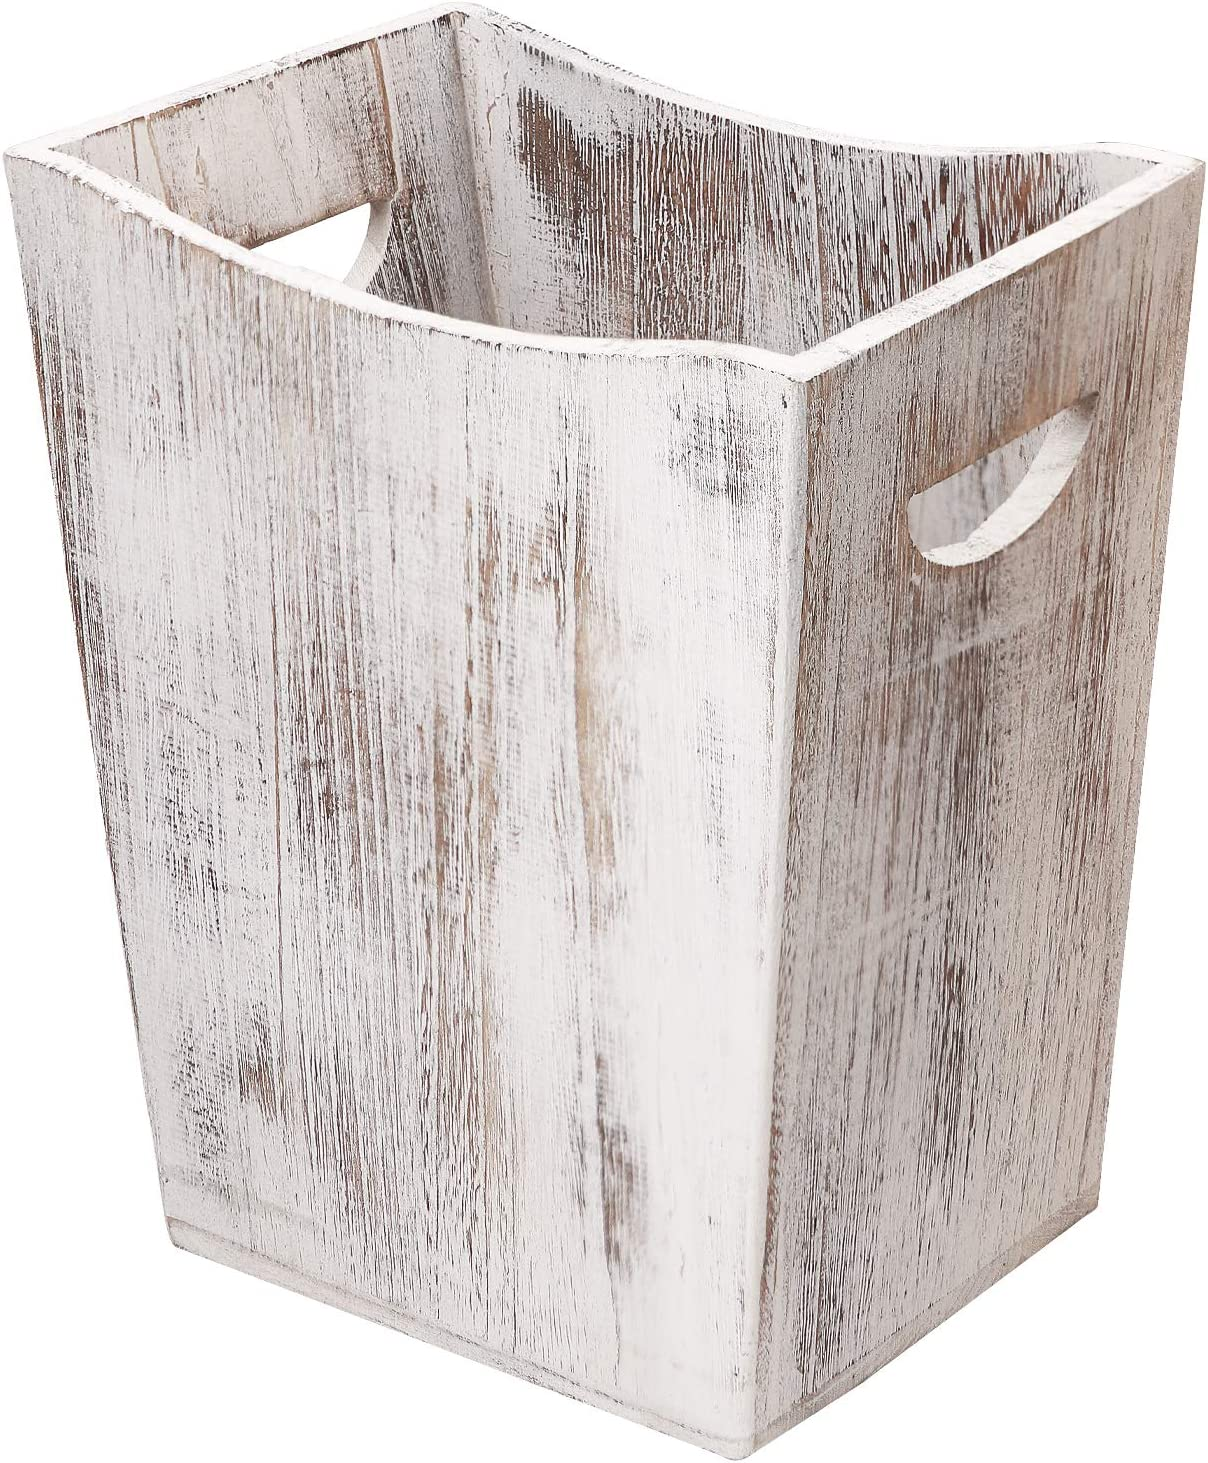 Honest Wood Trash Can,Rustic Farmhouse Style Wastebasket Bin with Handle for Living Room,Bedroom,Bathroom,Kitchen,Office(White)